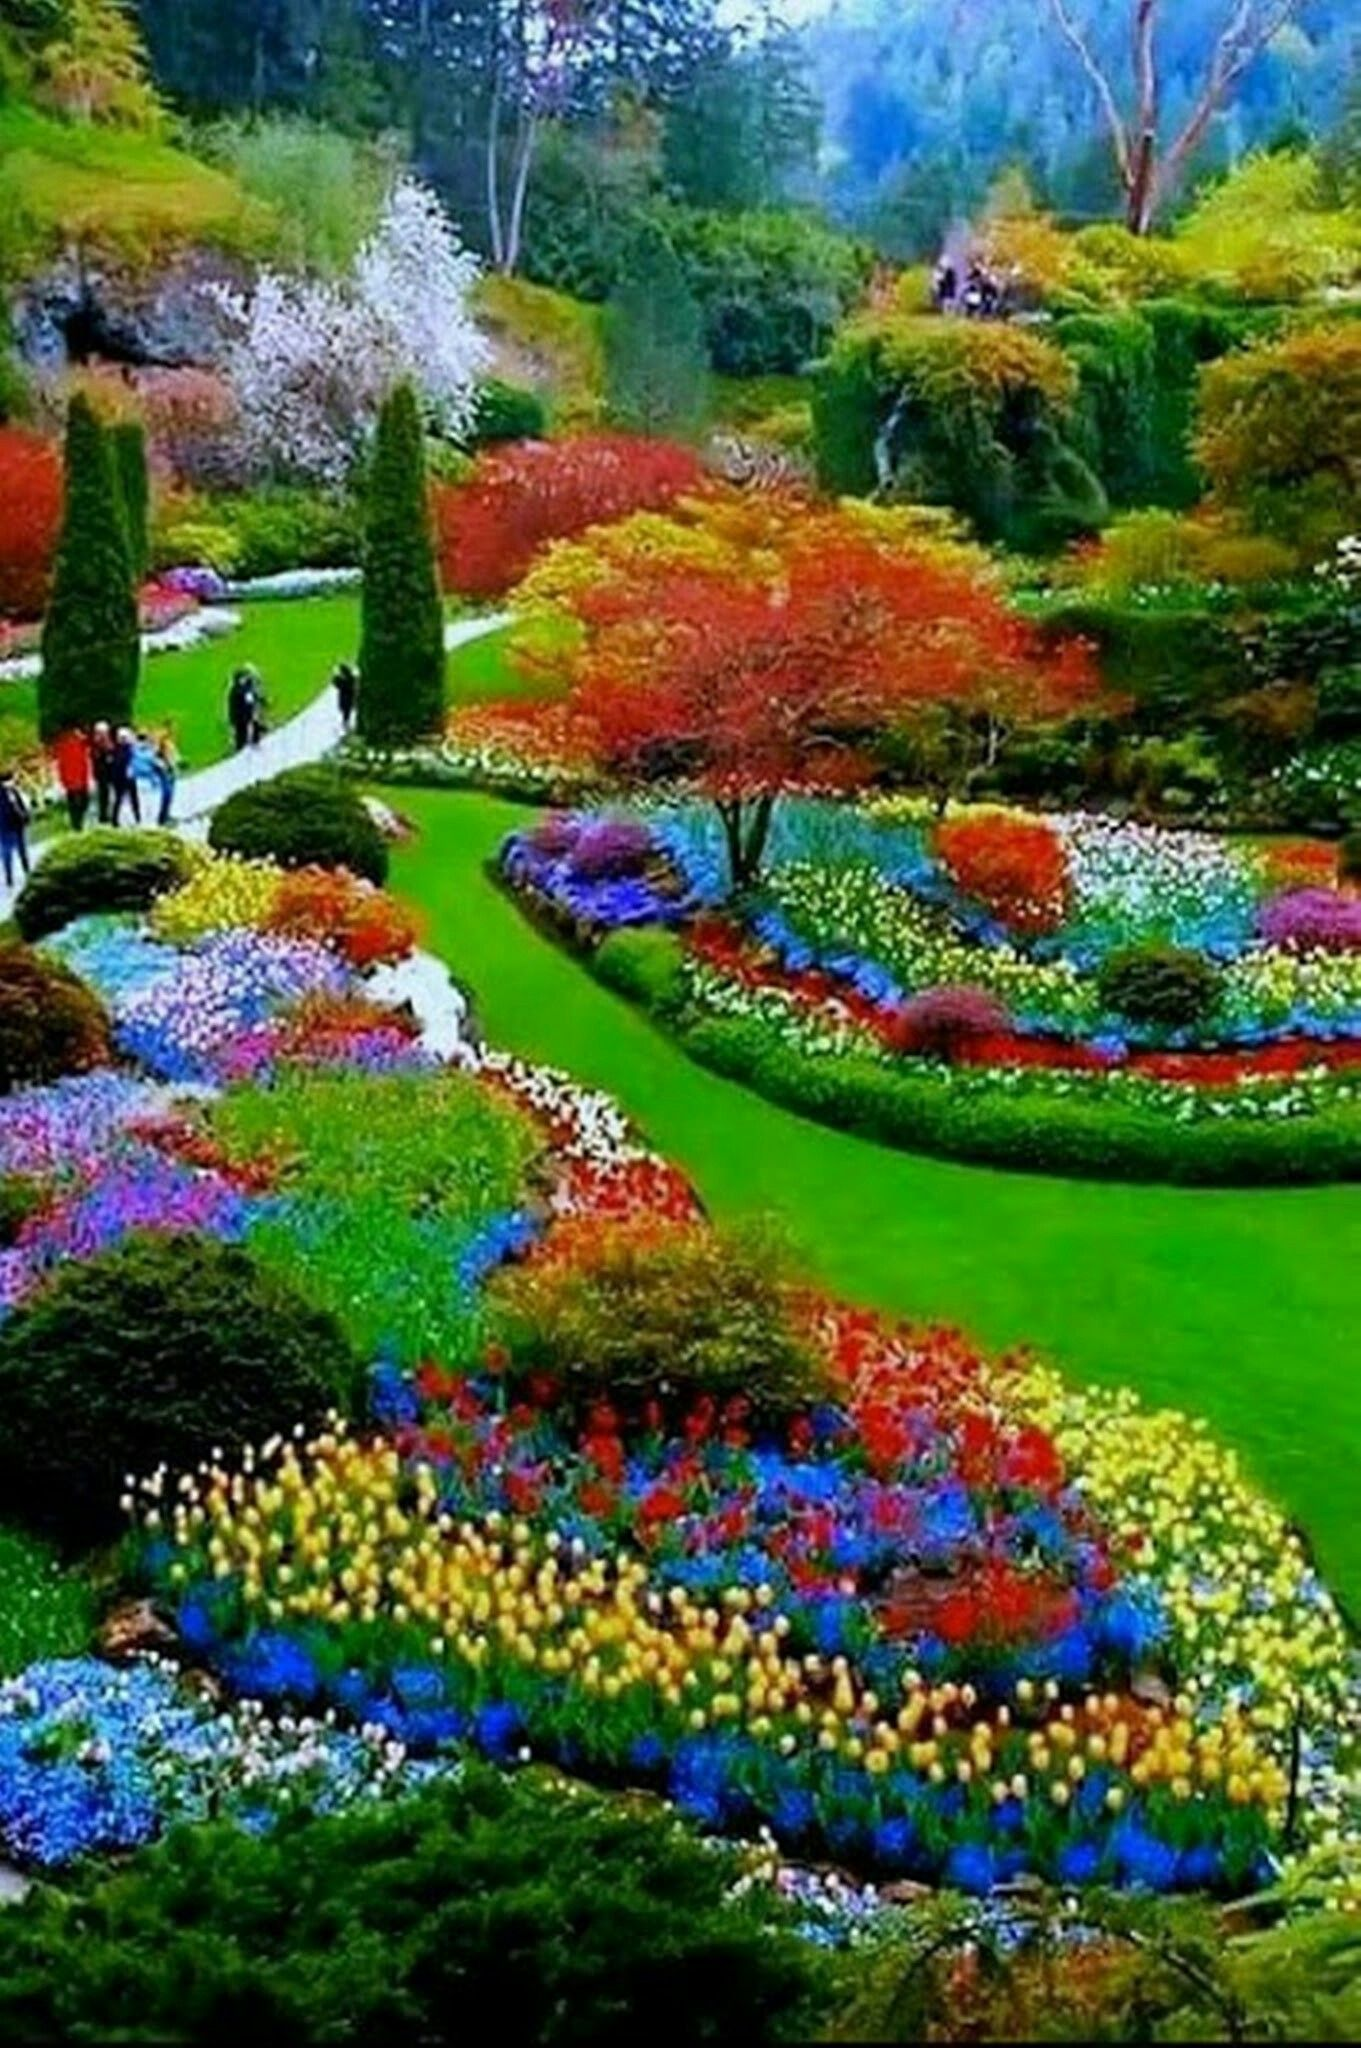 Pin By Bea On Maha 5555 Most Beautiful Gardens Beautiful Gardens Beautiful Flowers Garden